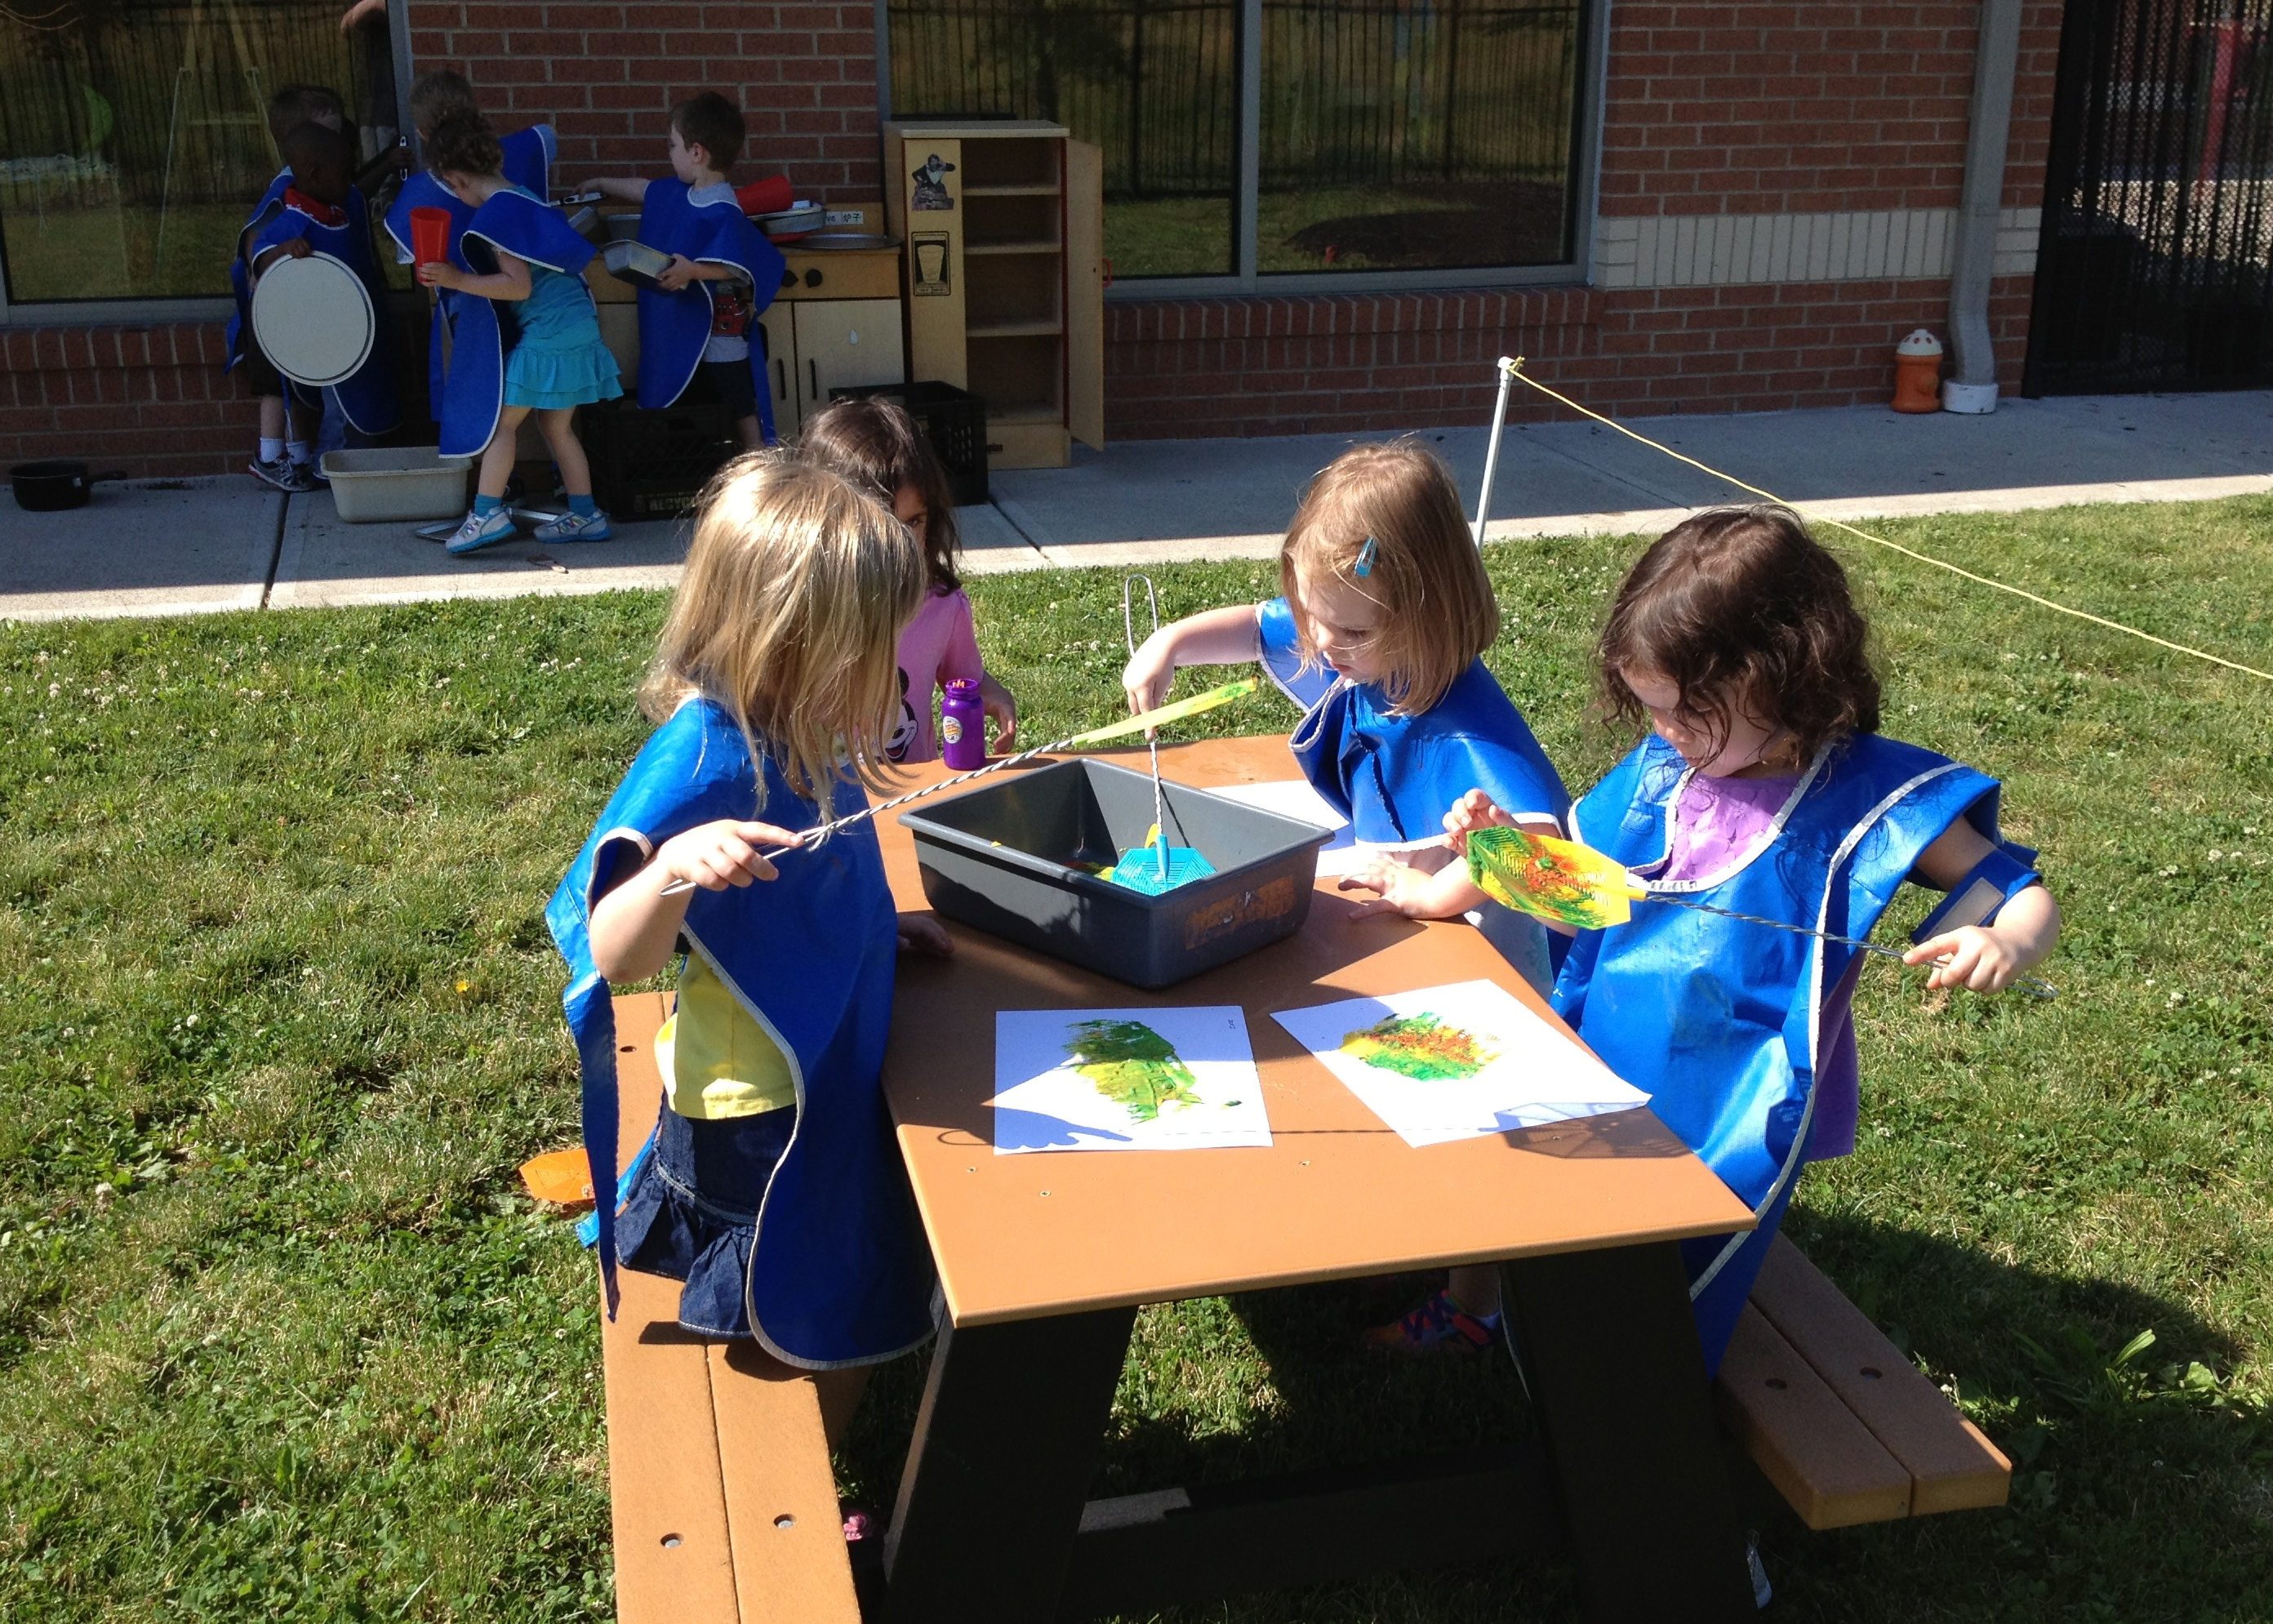 Day Nursery Outdoor Classroom Provides Meaningful Experiences For Preschoolers